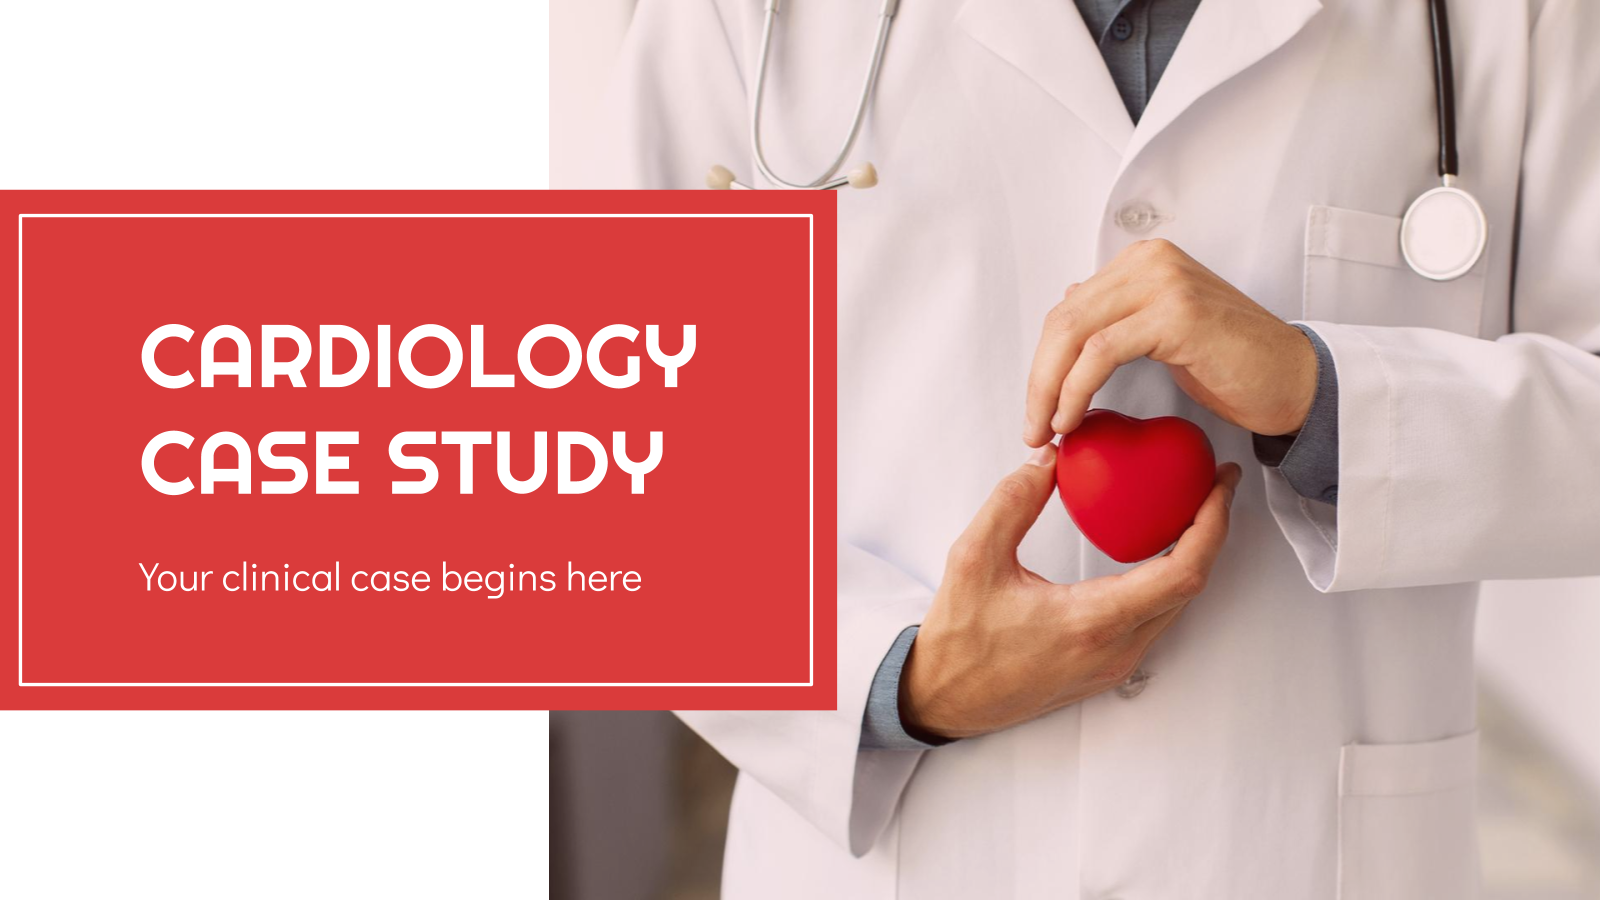 Cardiology Case Study presentation template